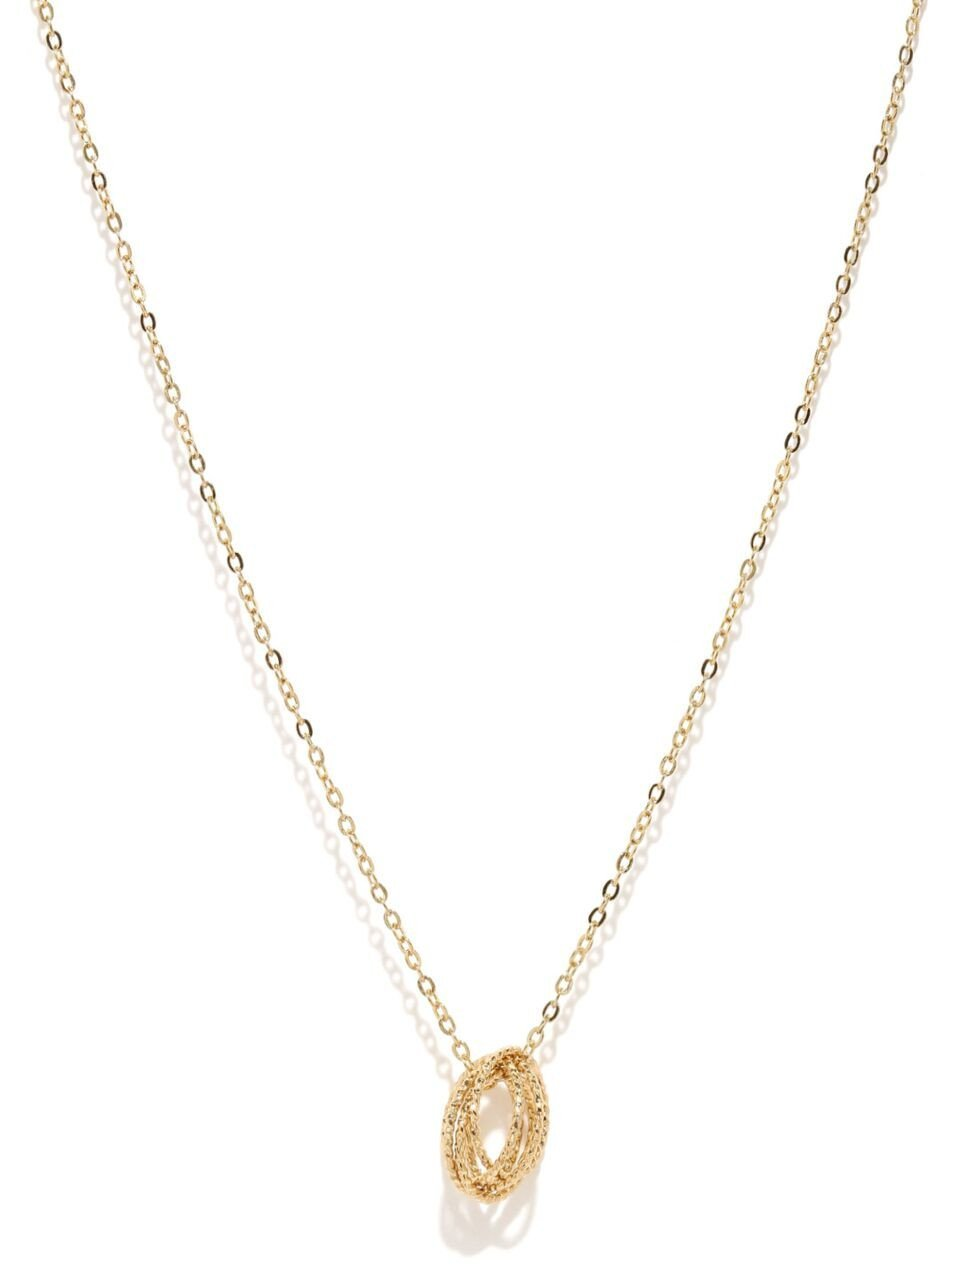 Gold Knot Charm Necklace